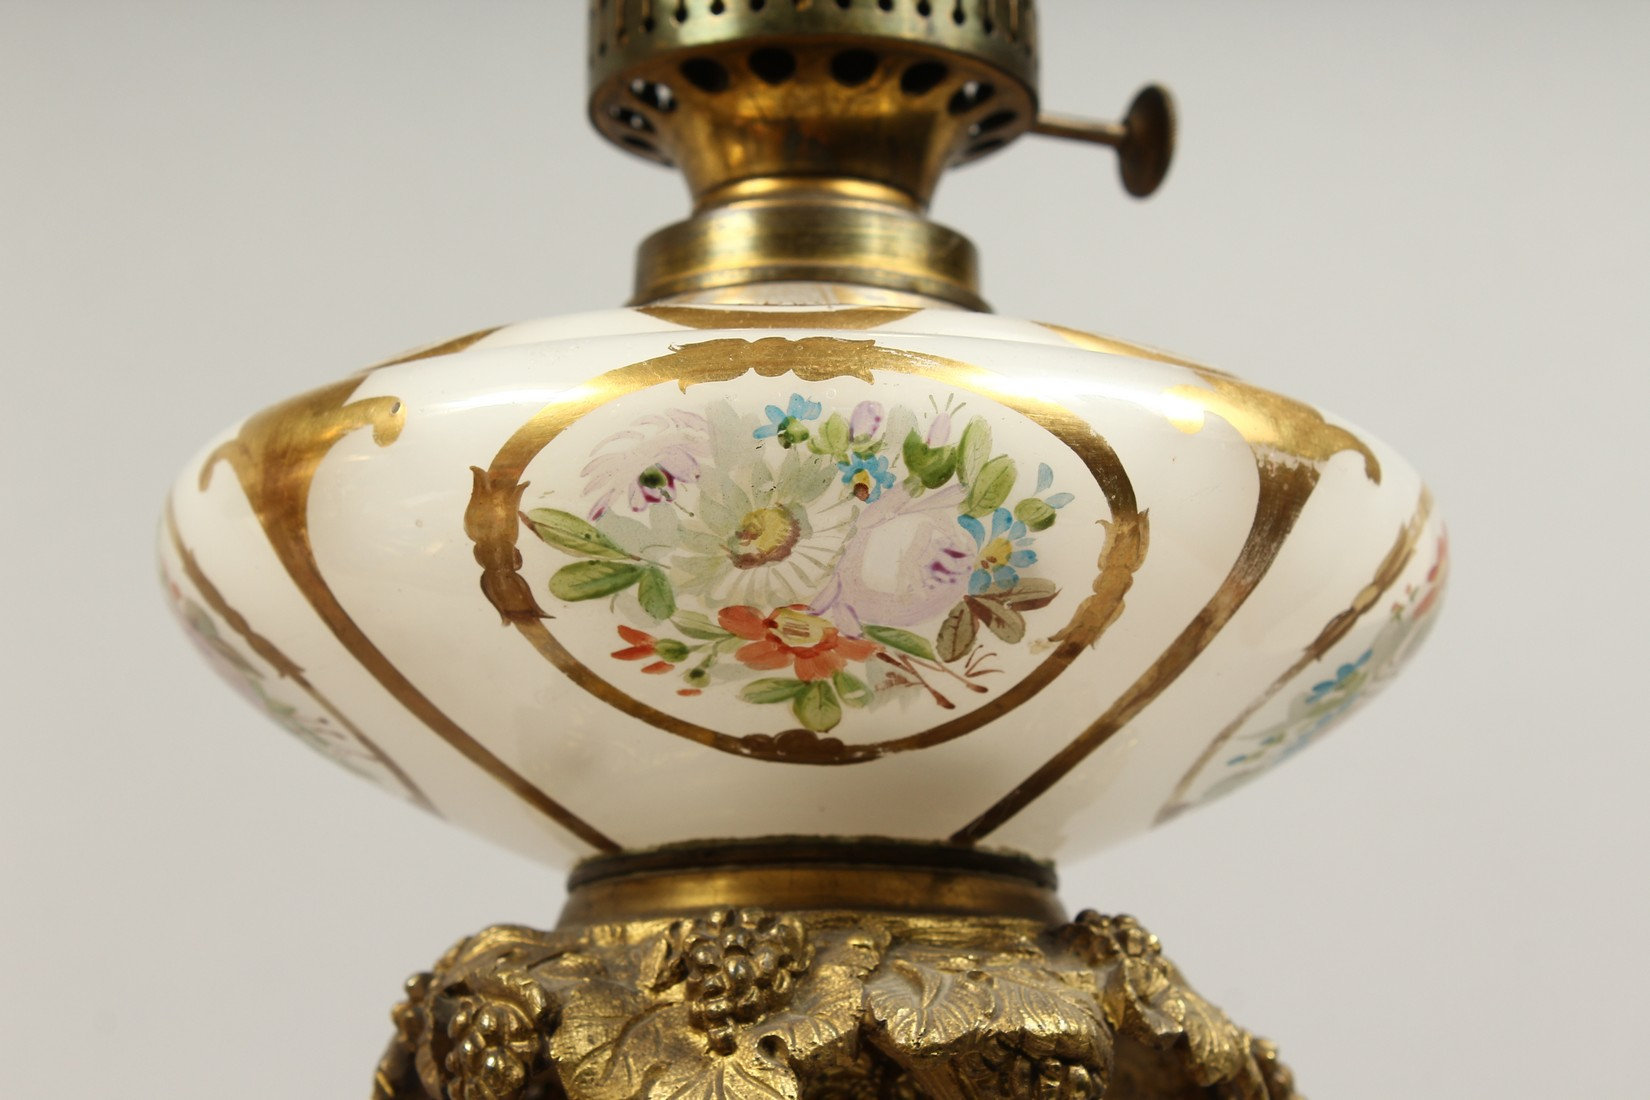 A SUPERB PAIR OF 19TH CENTURY FRENCH PORCELAIN AND GILT BRONZE LAMPS ON STANDS, painted with - Image 5 of 24